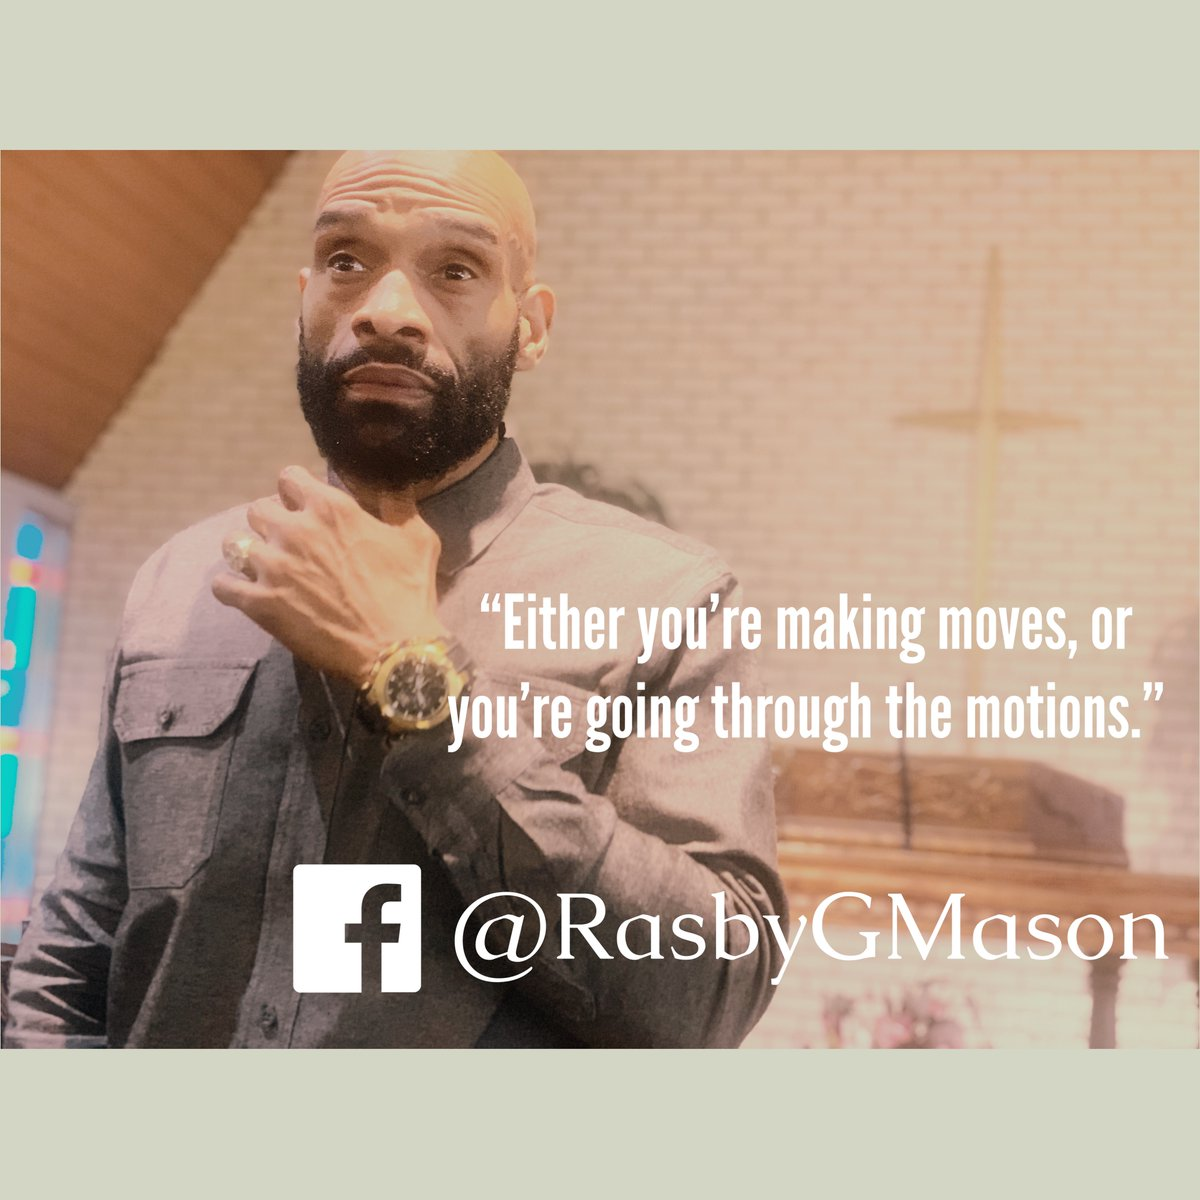 """Either you're making moves, or you're going through the motions.""  #MakingMoves #BishopRGMasonIIpic.twitter.com/9M0C9vjIxe"